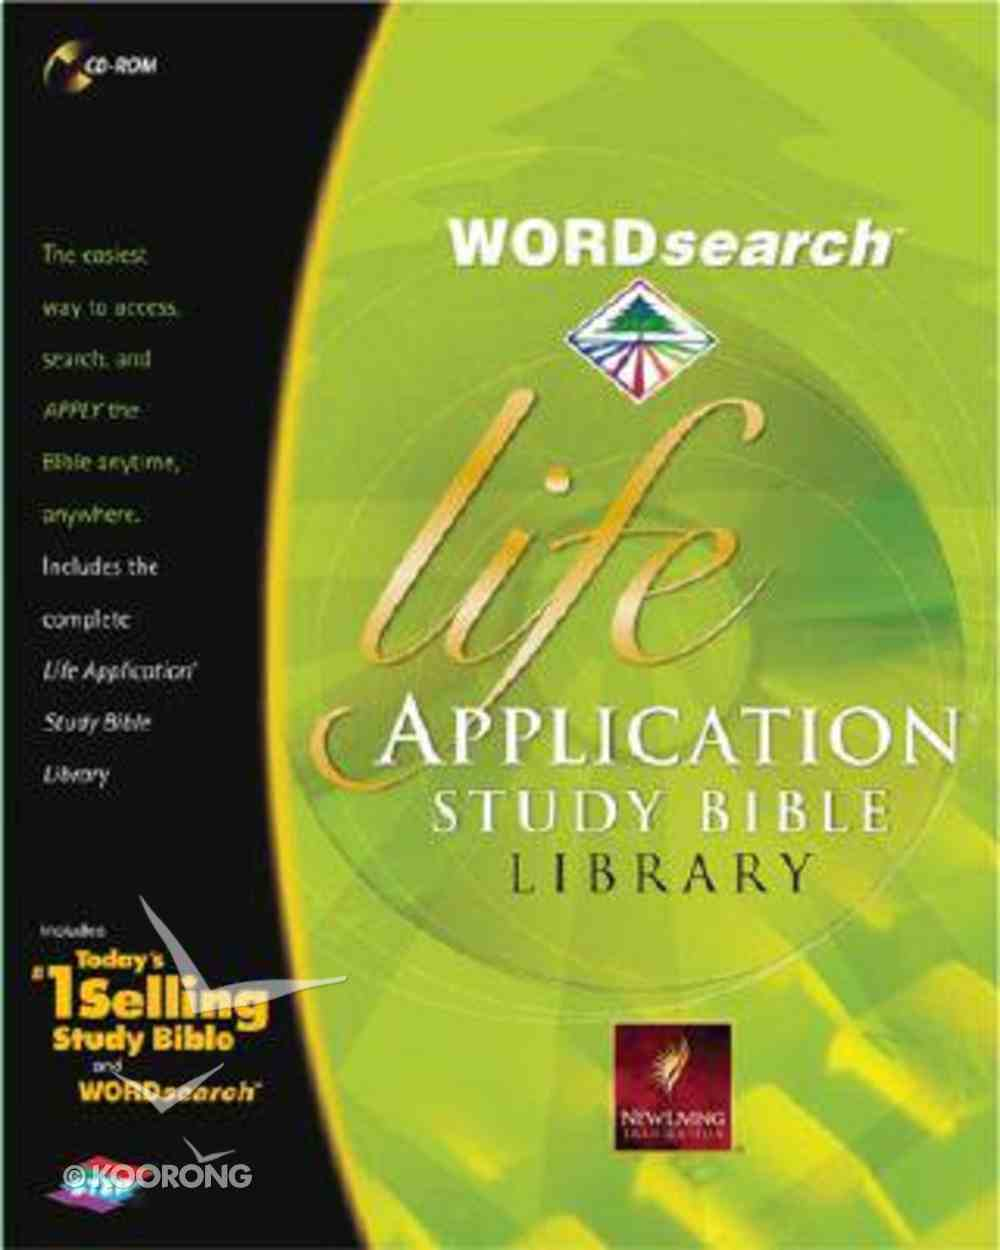 Wordsearch Life Application Study Bible Library CDROM CD-rom